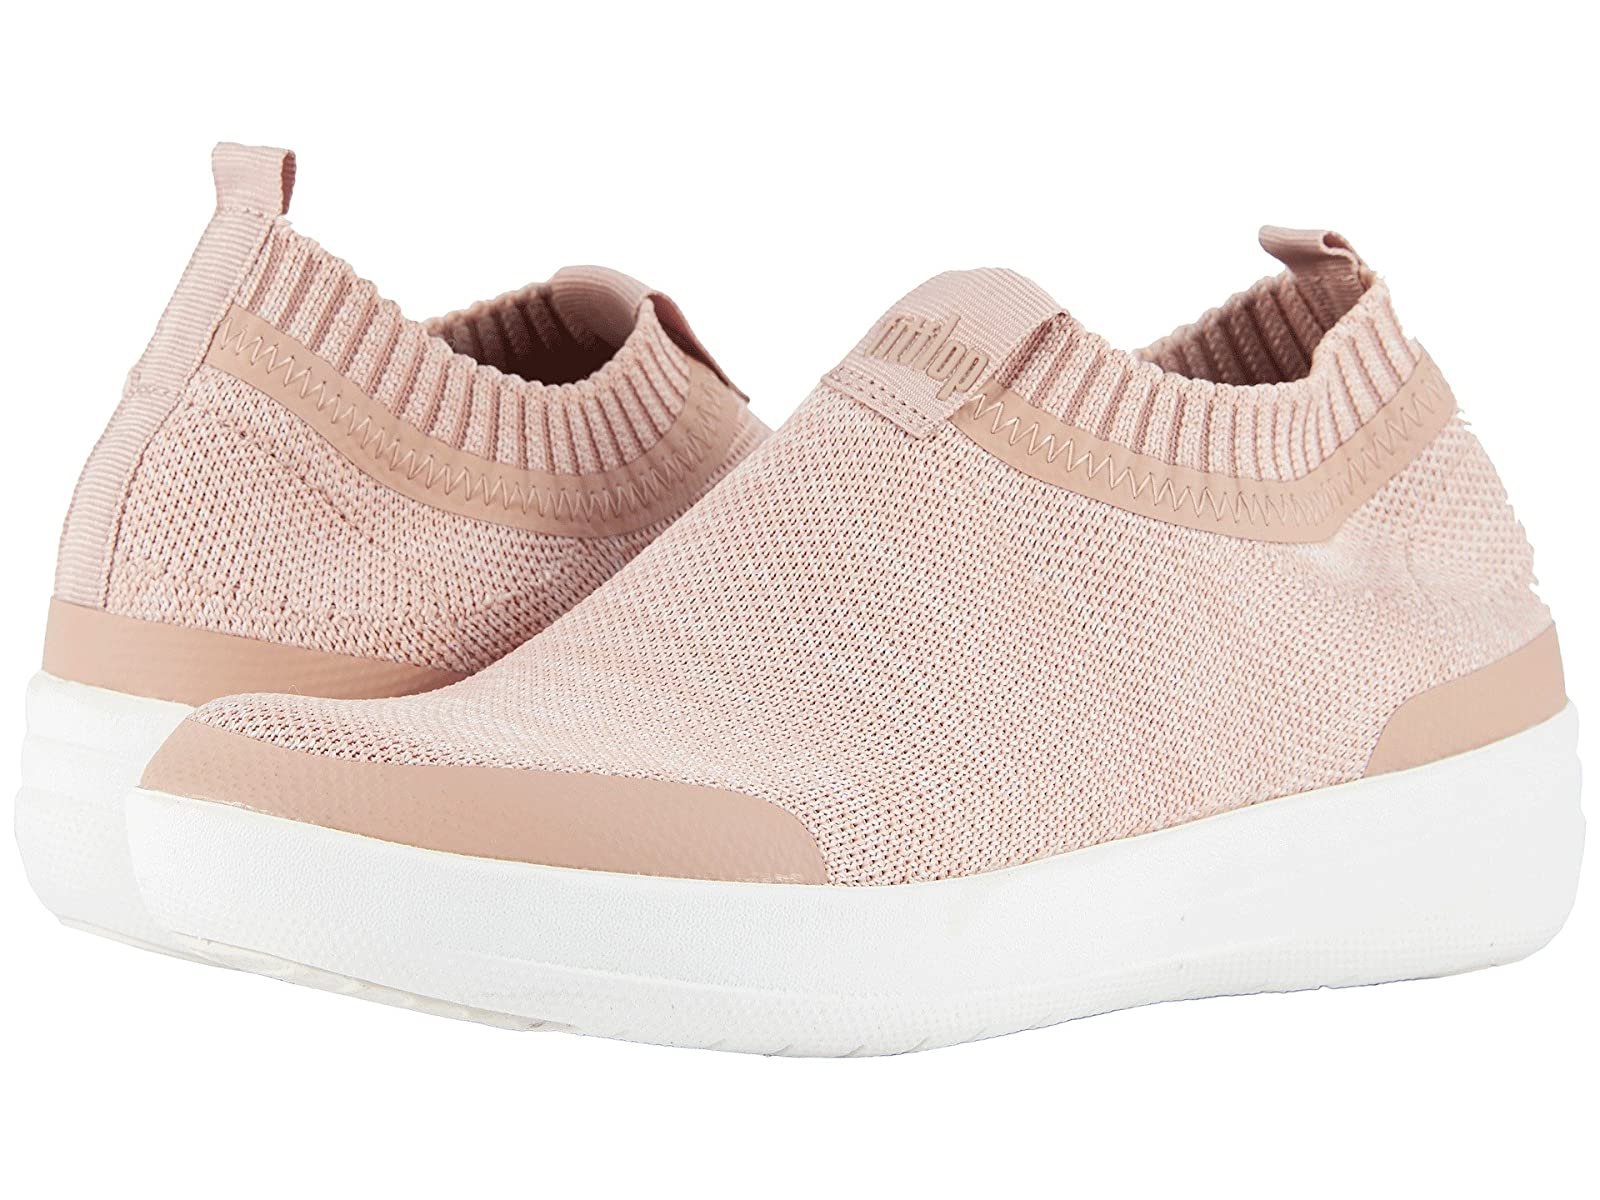 FitFlop Uberknit Slip-On SneakersCheap and distinctive eye-catching shoes